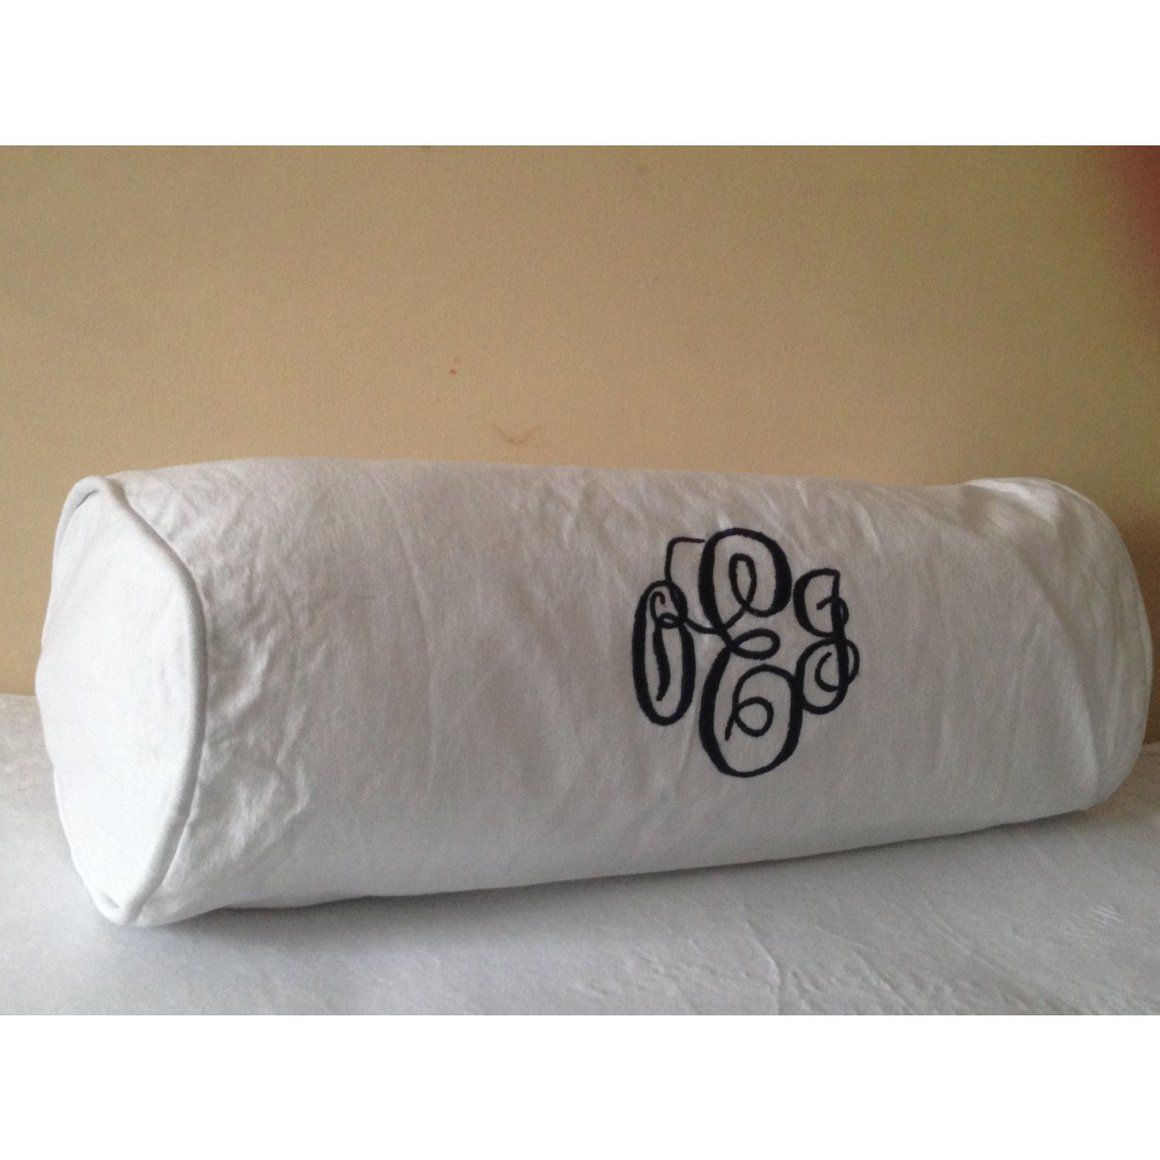 Incredible Monogram Bedding Bolster Cushion Cover With Piping Bolster Machost Co Dining Chair Design Ideas Machostcouk